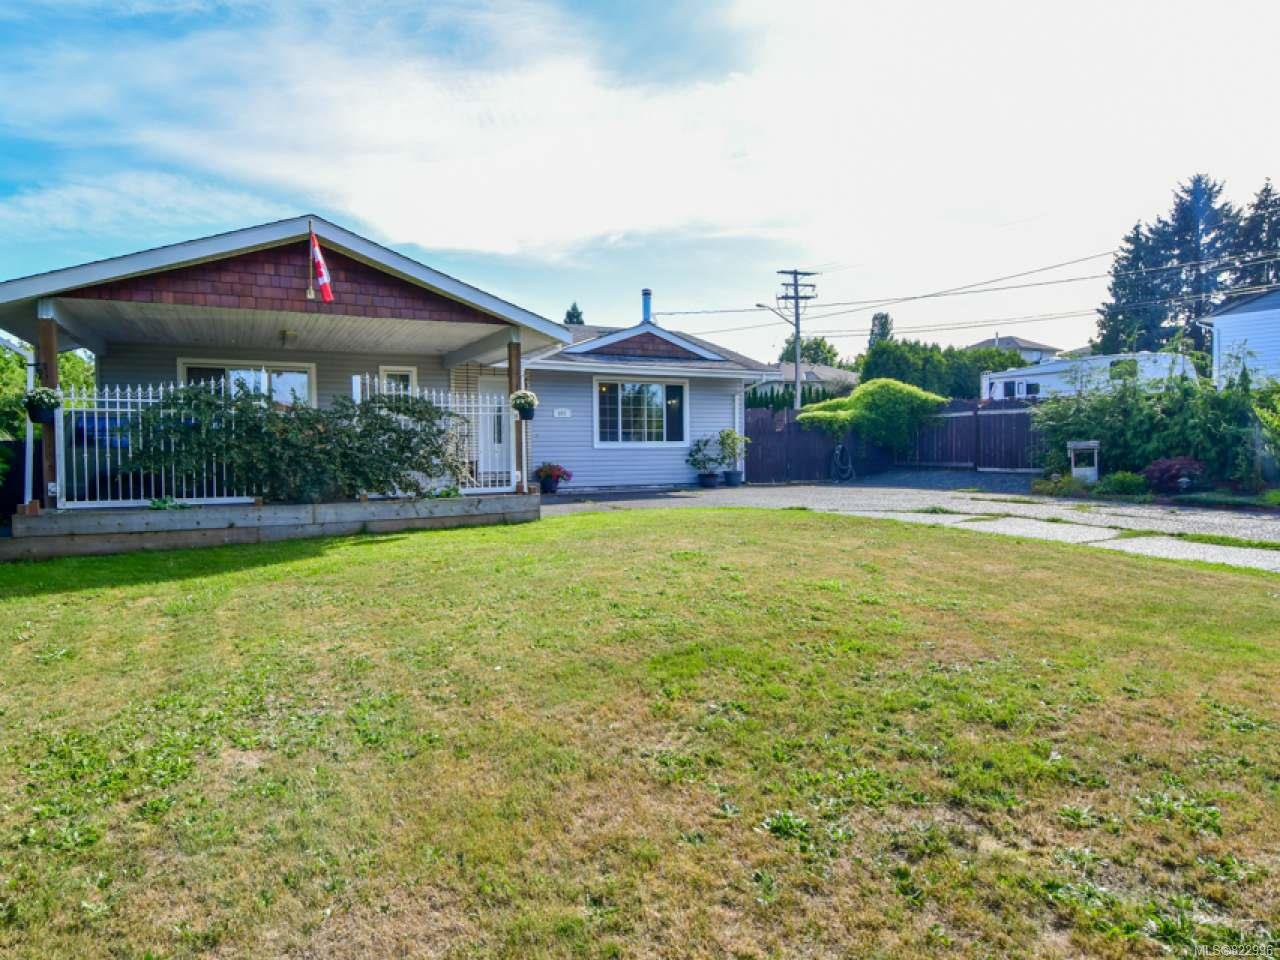 Photo 1: Photos: 691 Holm Rd in CAMPBELL RIVER: CR Willow Point House for sale (Campbell River)  : MLS®# 822996